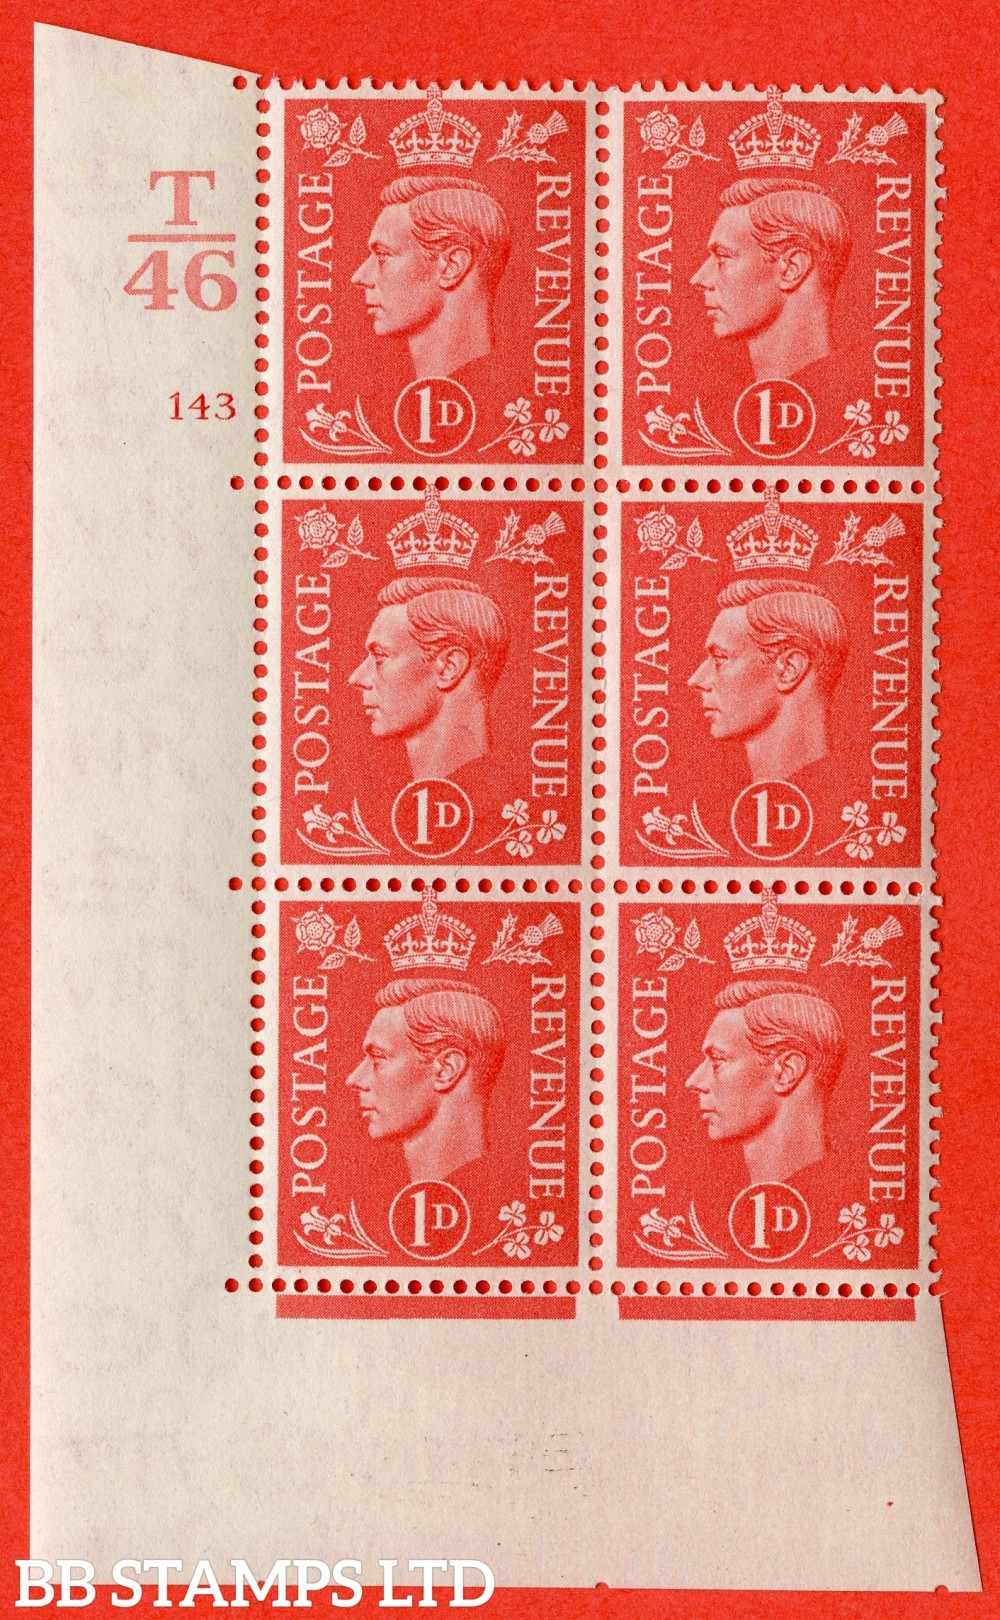 "SG. 486. Q5. 1d Pale scarlet. A superb UNMOUNTED MINT "" Control T46  cylinder 143 no dot "" control block of 6 with perf type 5 E/I."